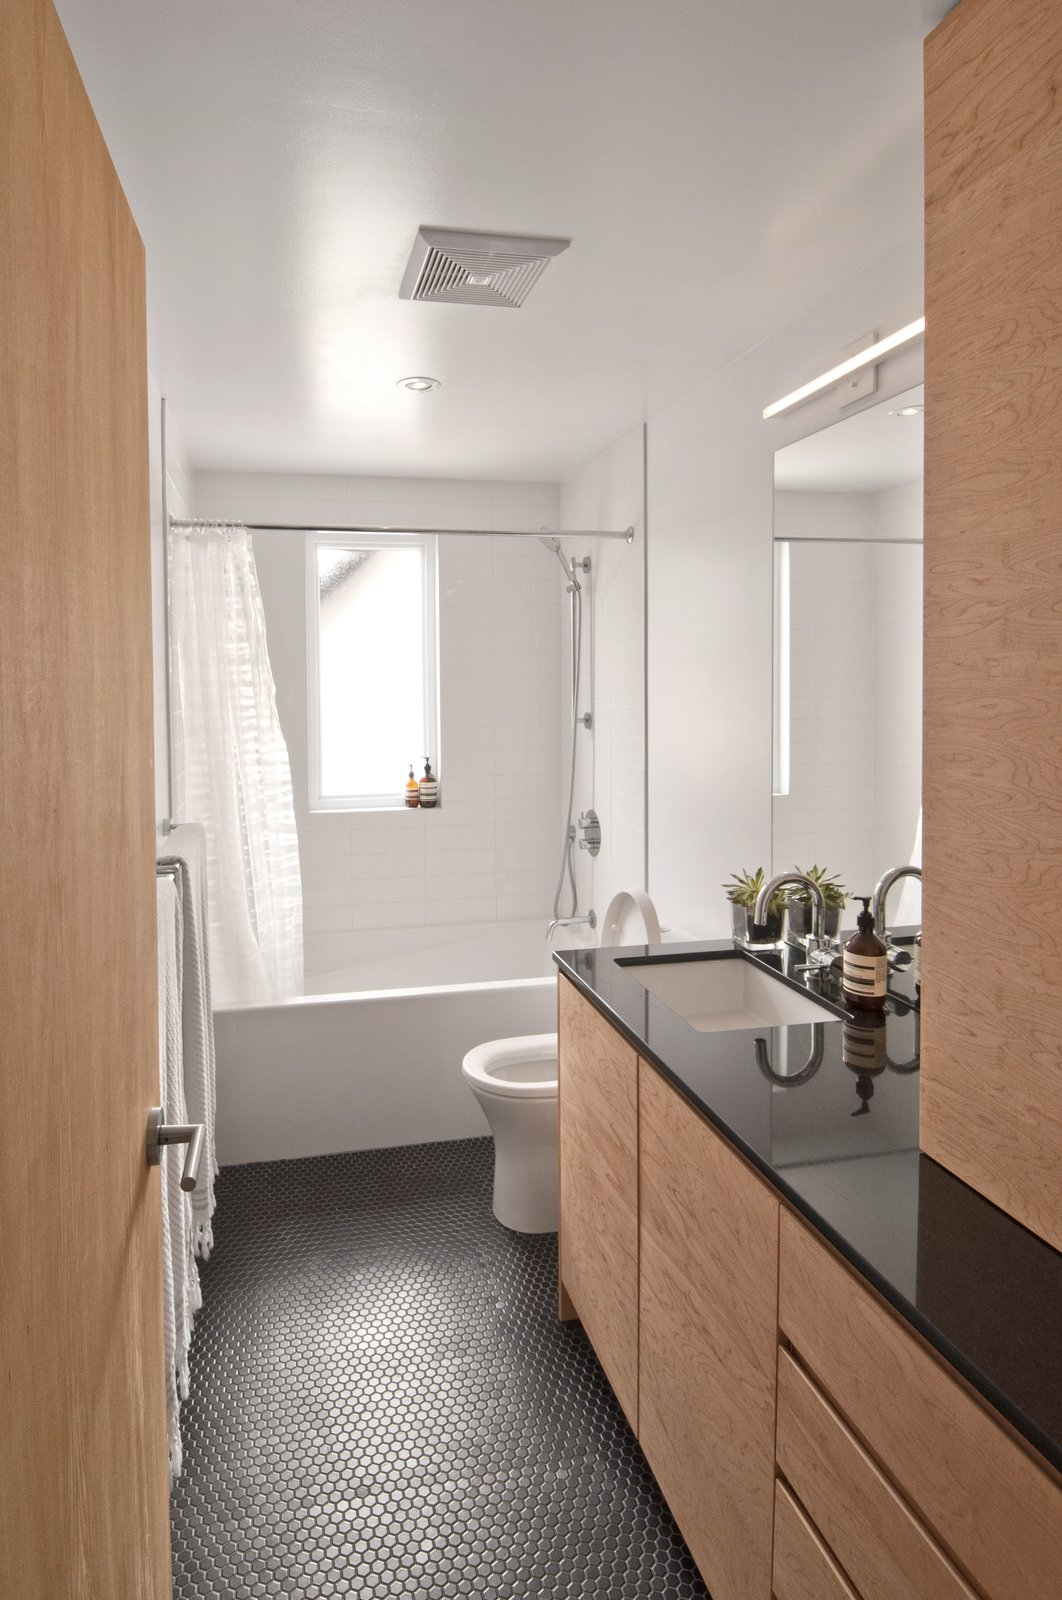 Bath Room, Undermount Sink, Porcelain Tile Floor, Granite Counter, Alcove Tub, Open Shower, Recessed Lighting, Ceramic Tile Wall, and Two Piece Toilet  Fabre Residence